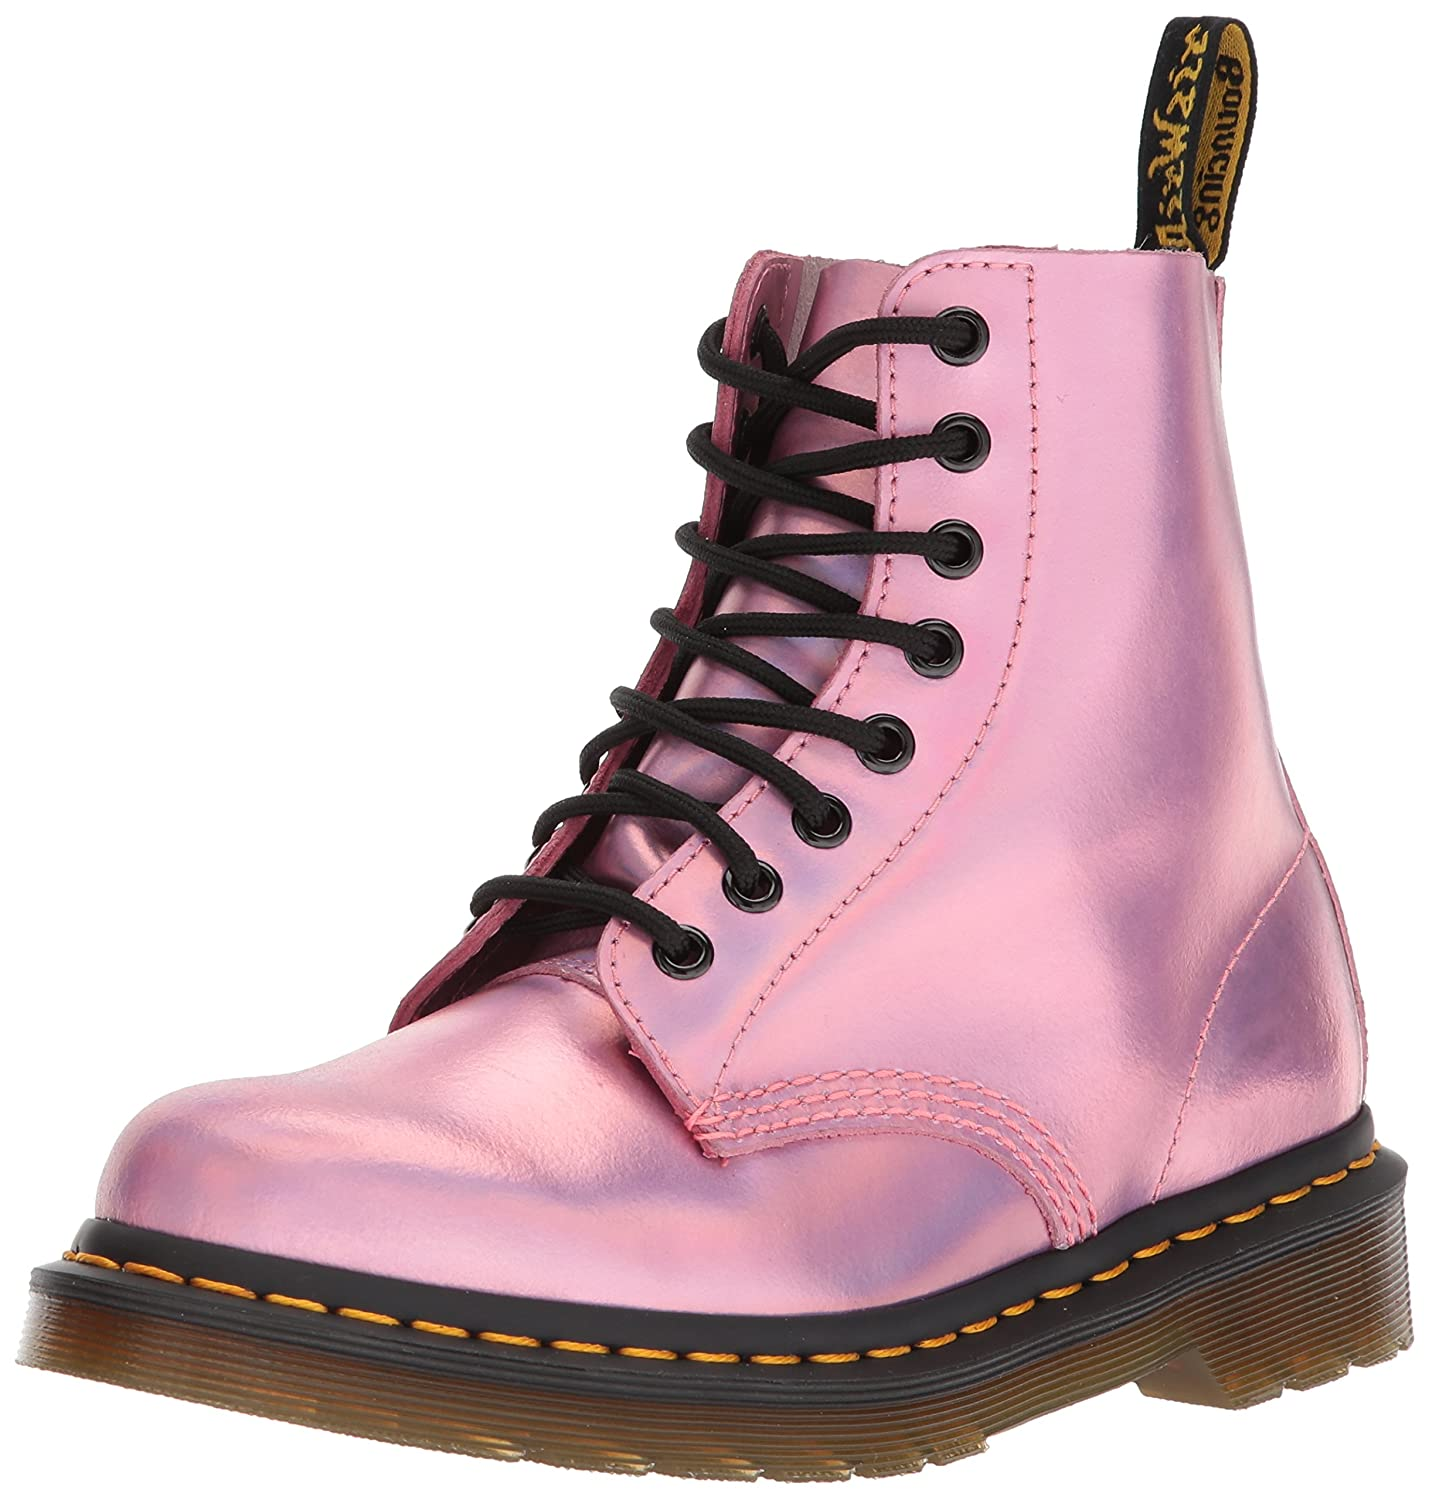 Dr. Martens Women's Pascal RS Mallow Pink Ankle Boot B071RRCWC4 9 Medium UK (11 US)|Mallow Pink